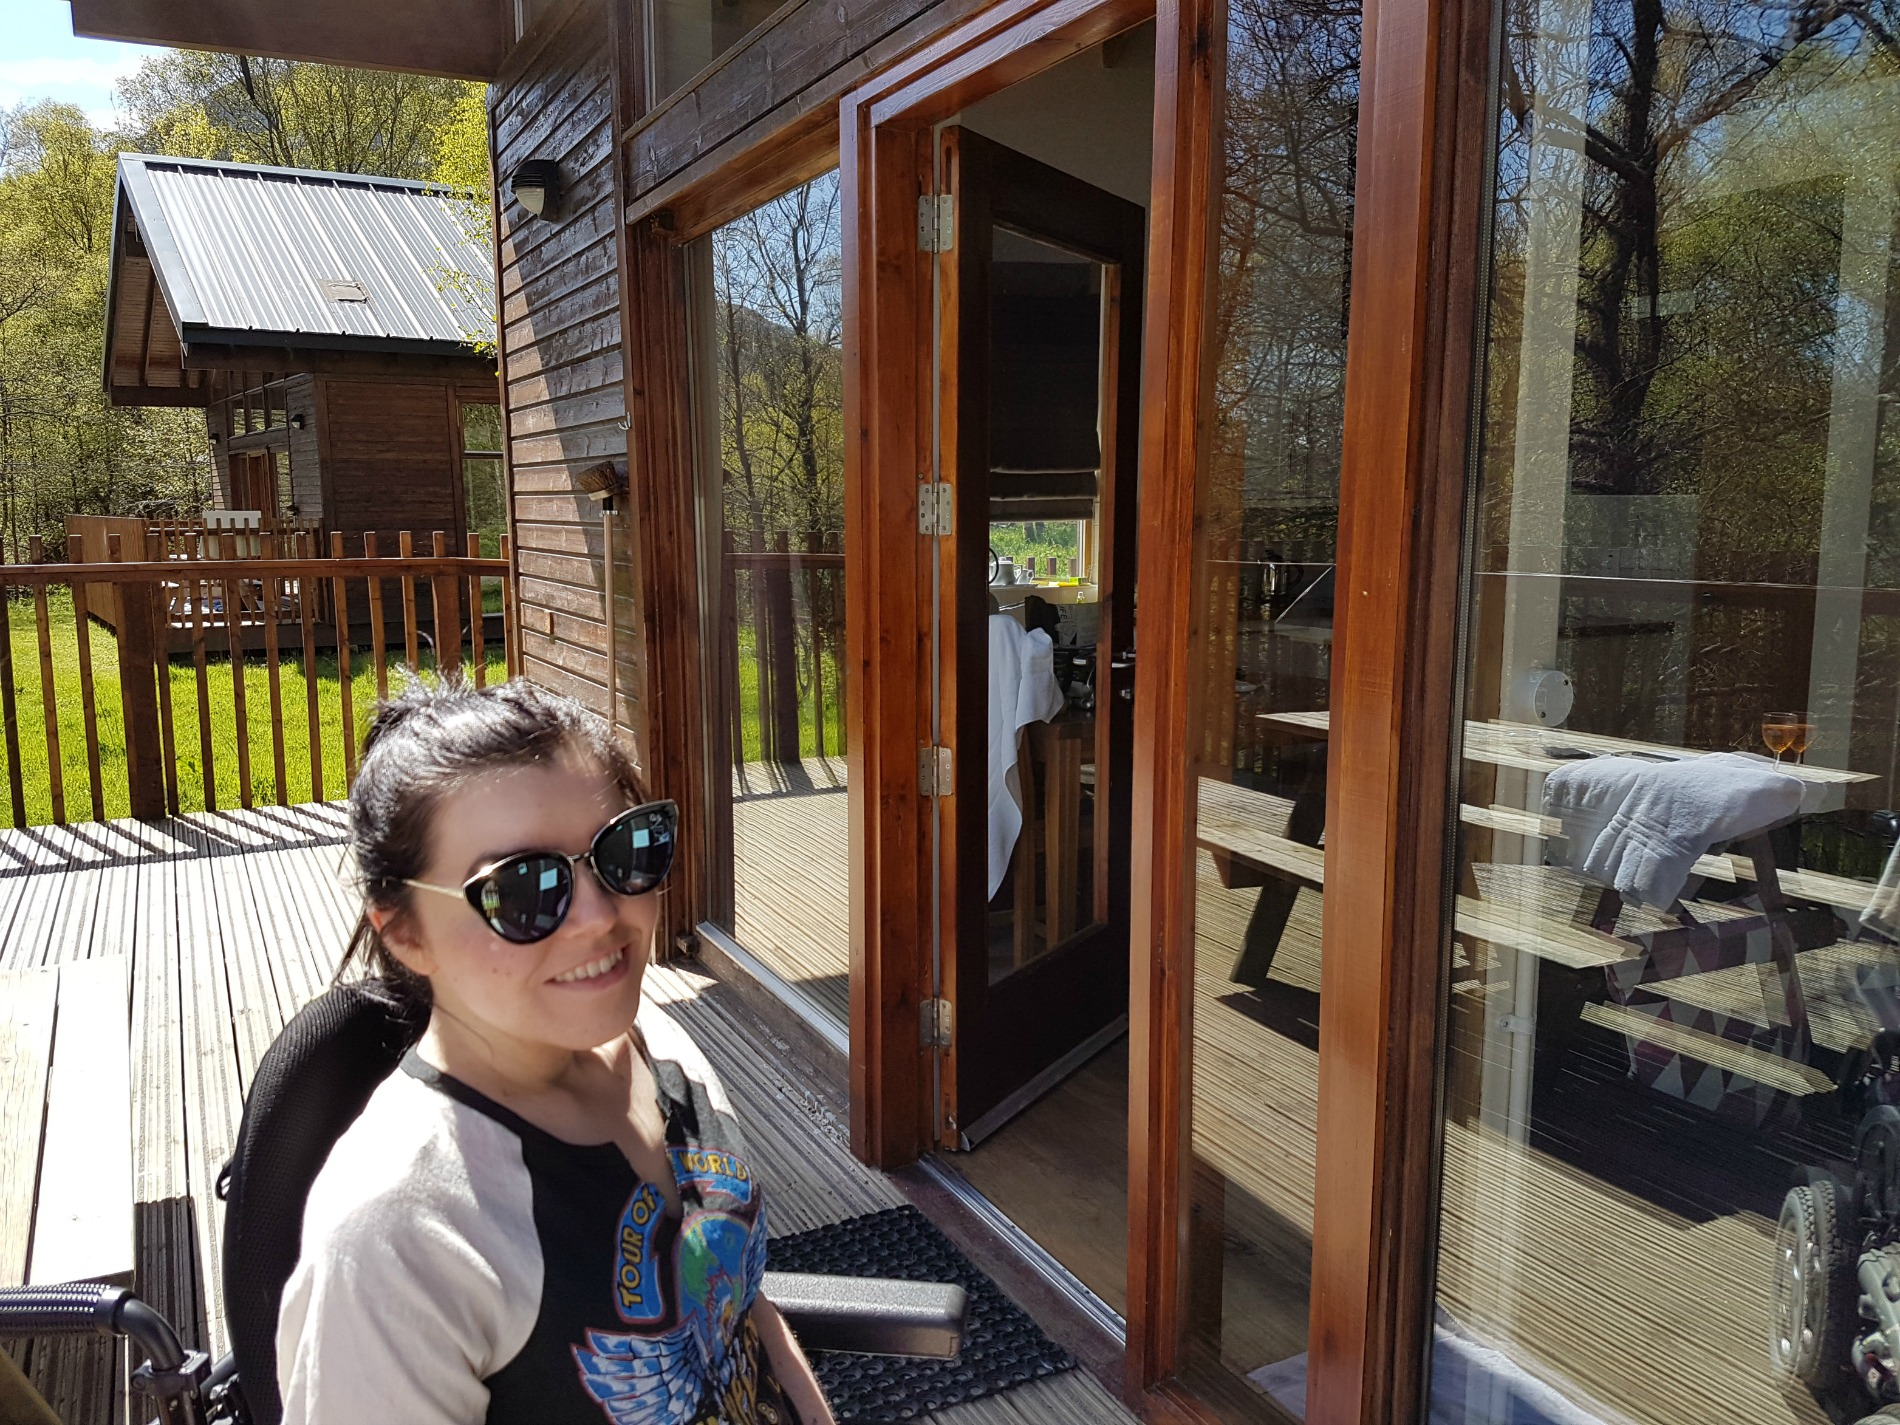 Forest Holidays Strathyre Accessible Silver Birch Cabin: My Top 5 Best Travel Moments of 2017